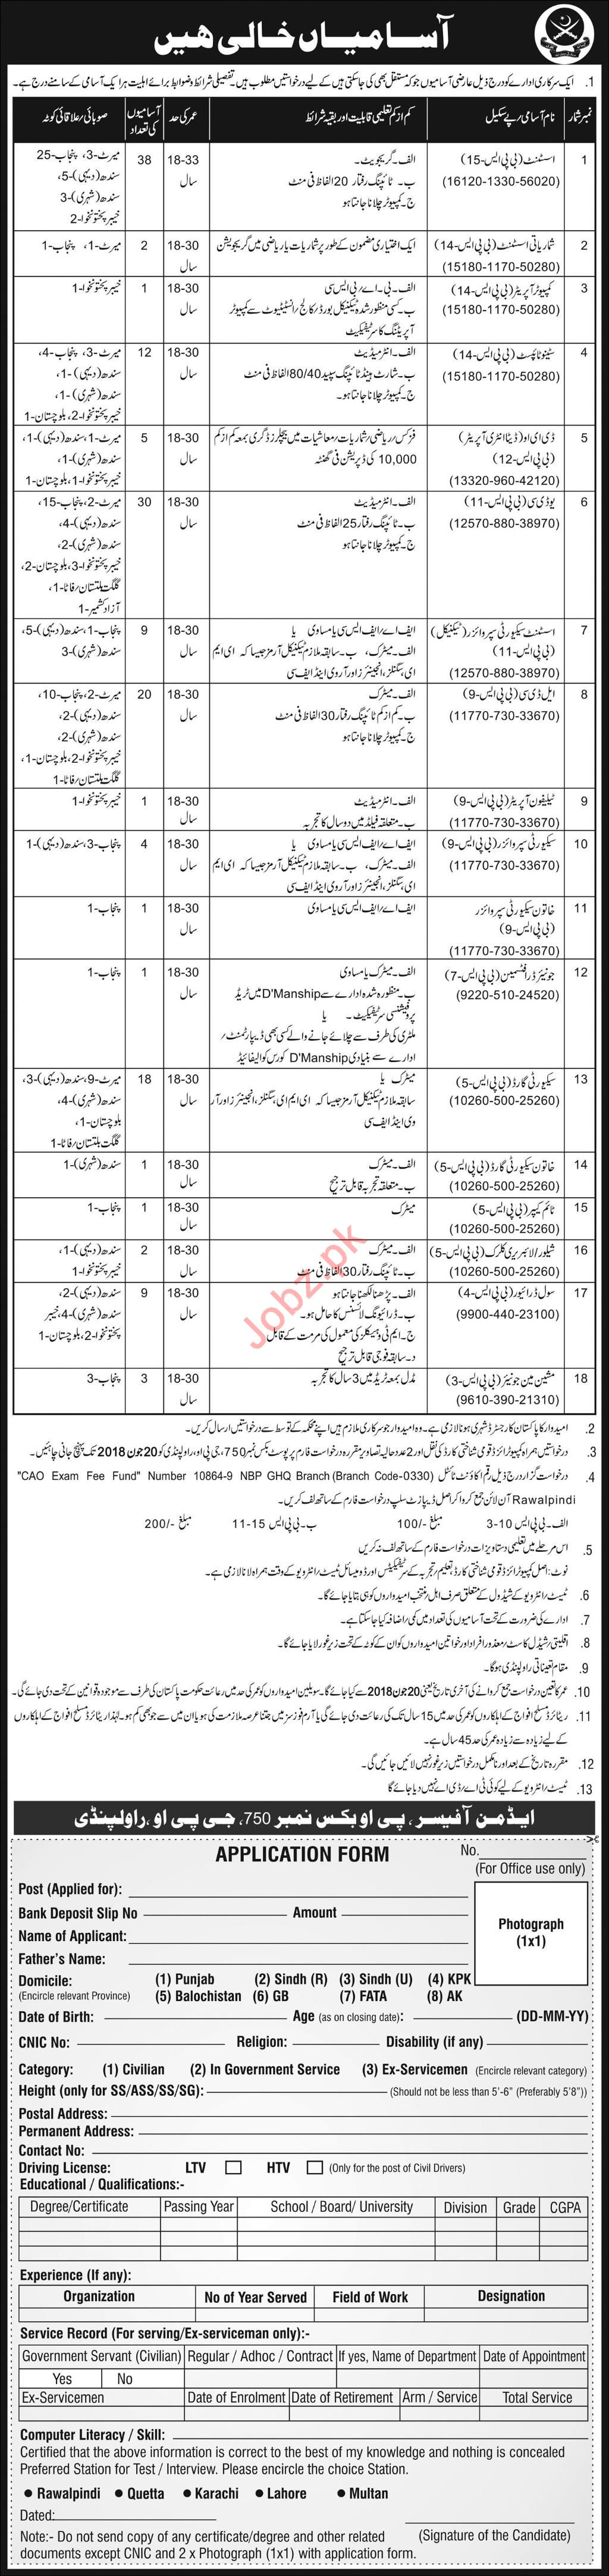 Pakistan Army Civilian Staff Jobs 2018